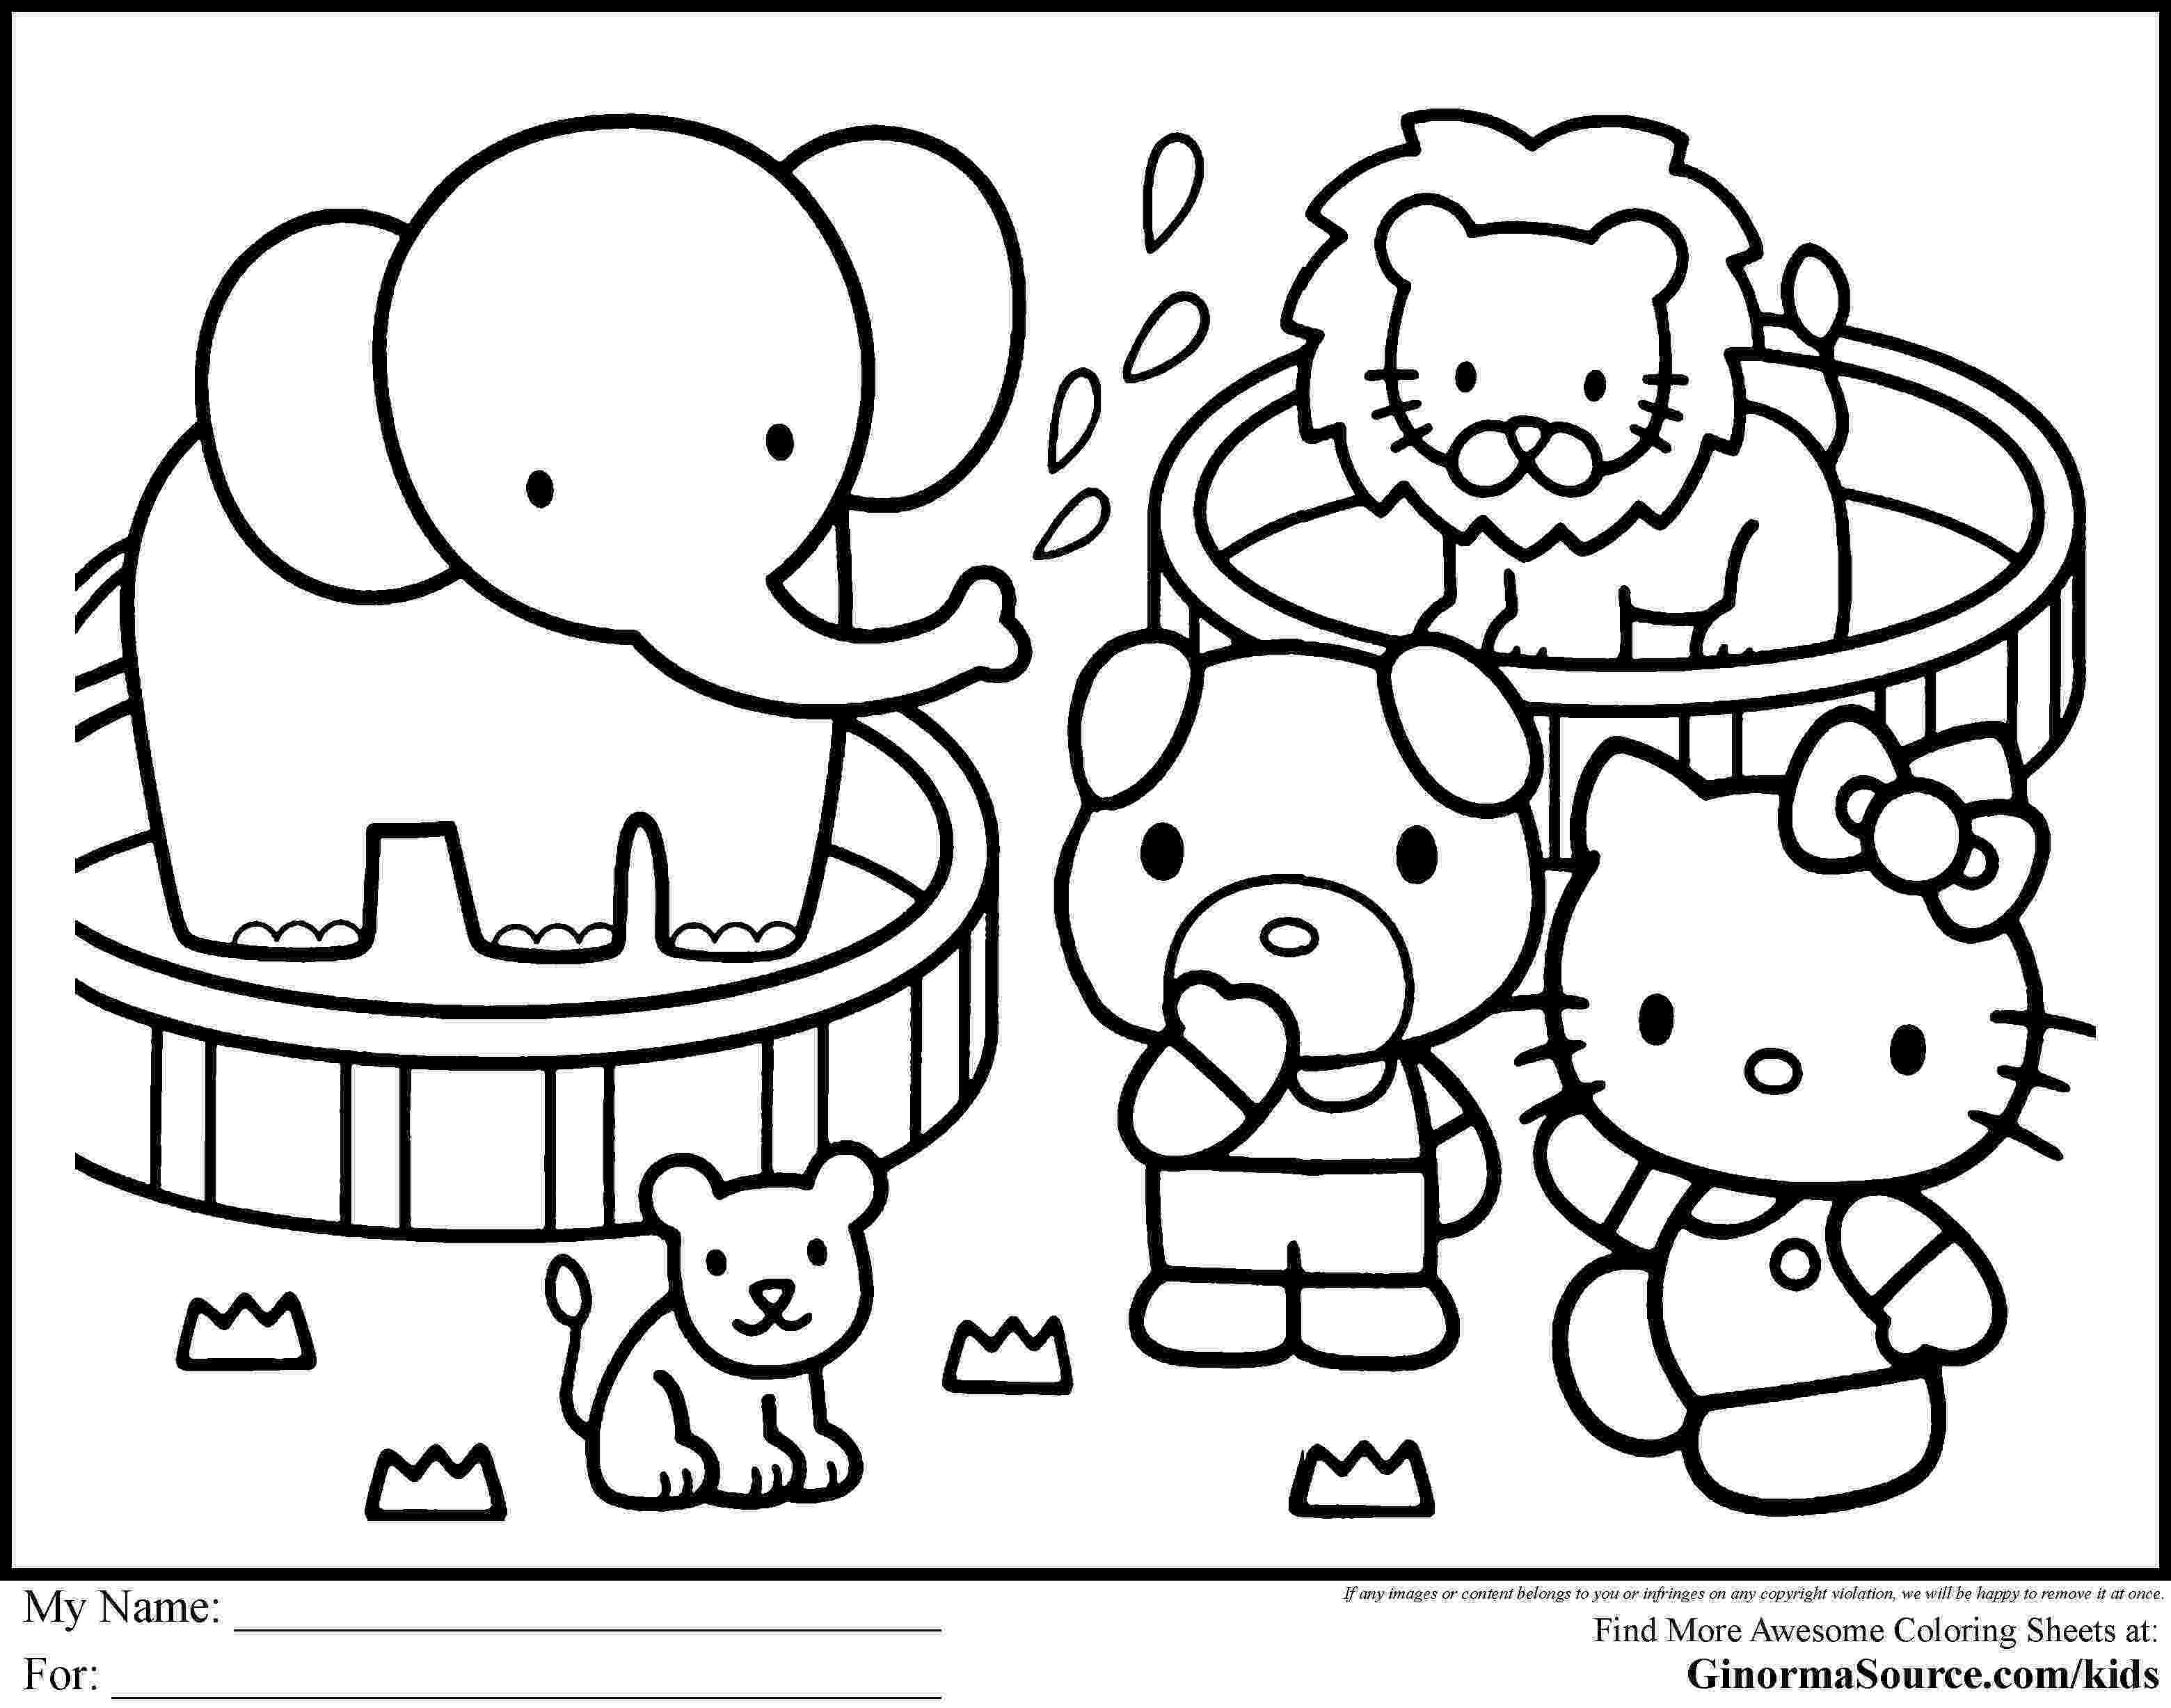 free printable coloring sheets with names girls names coloring pages to download and print for free printable with free coloring names sheets